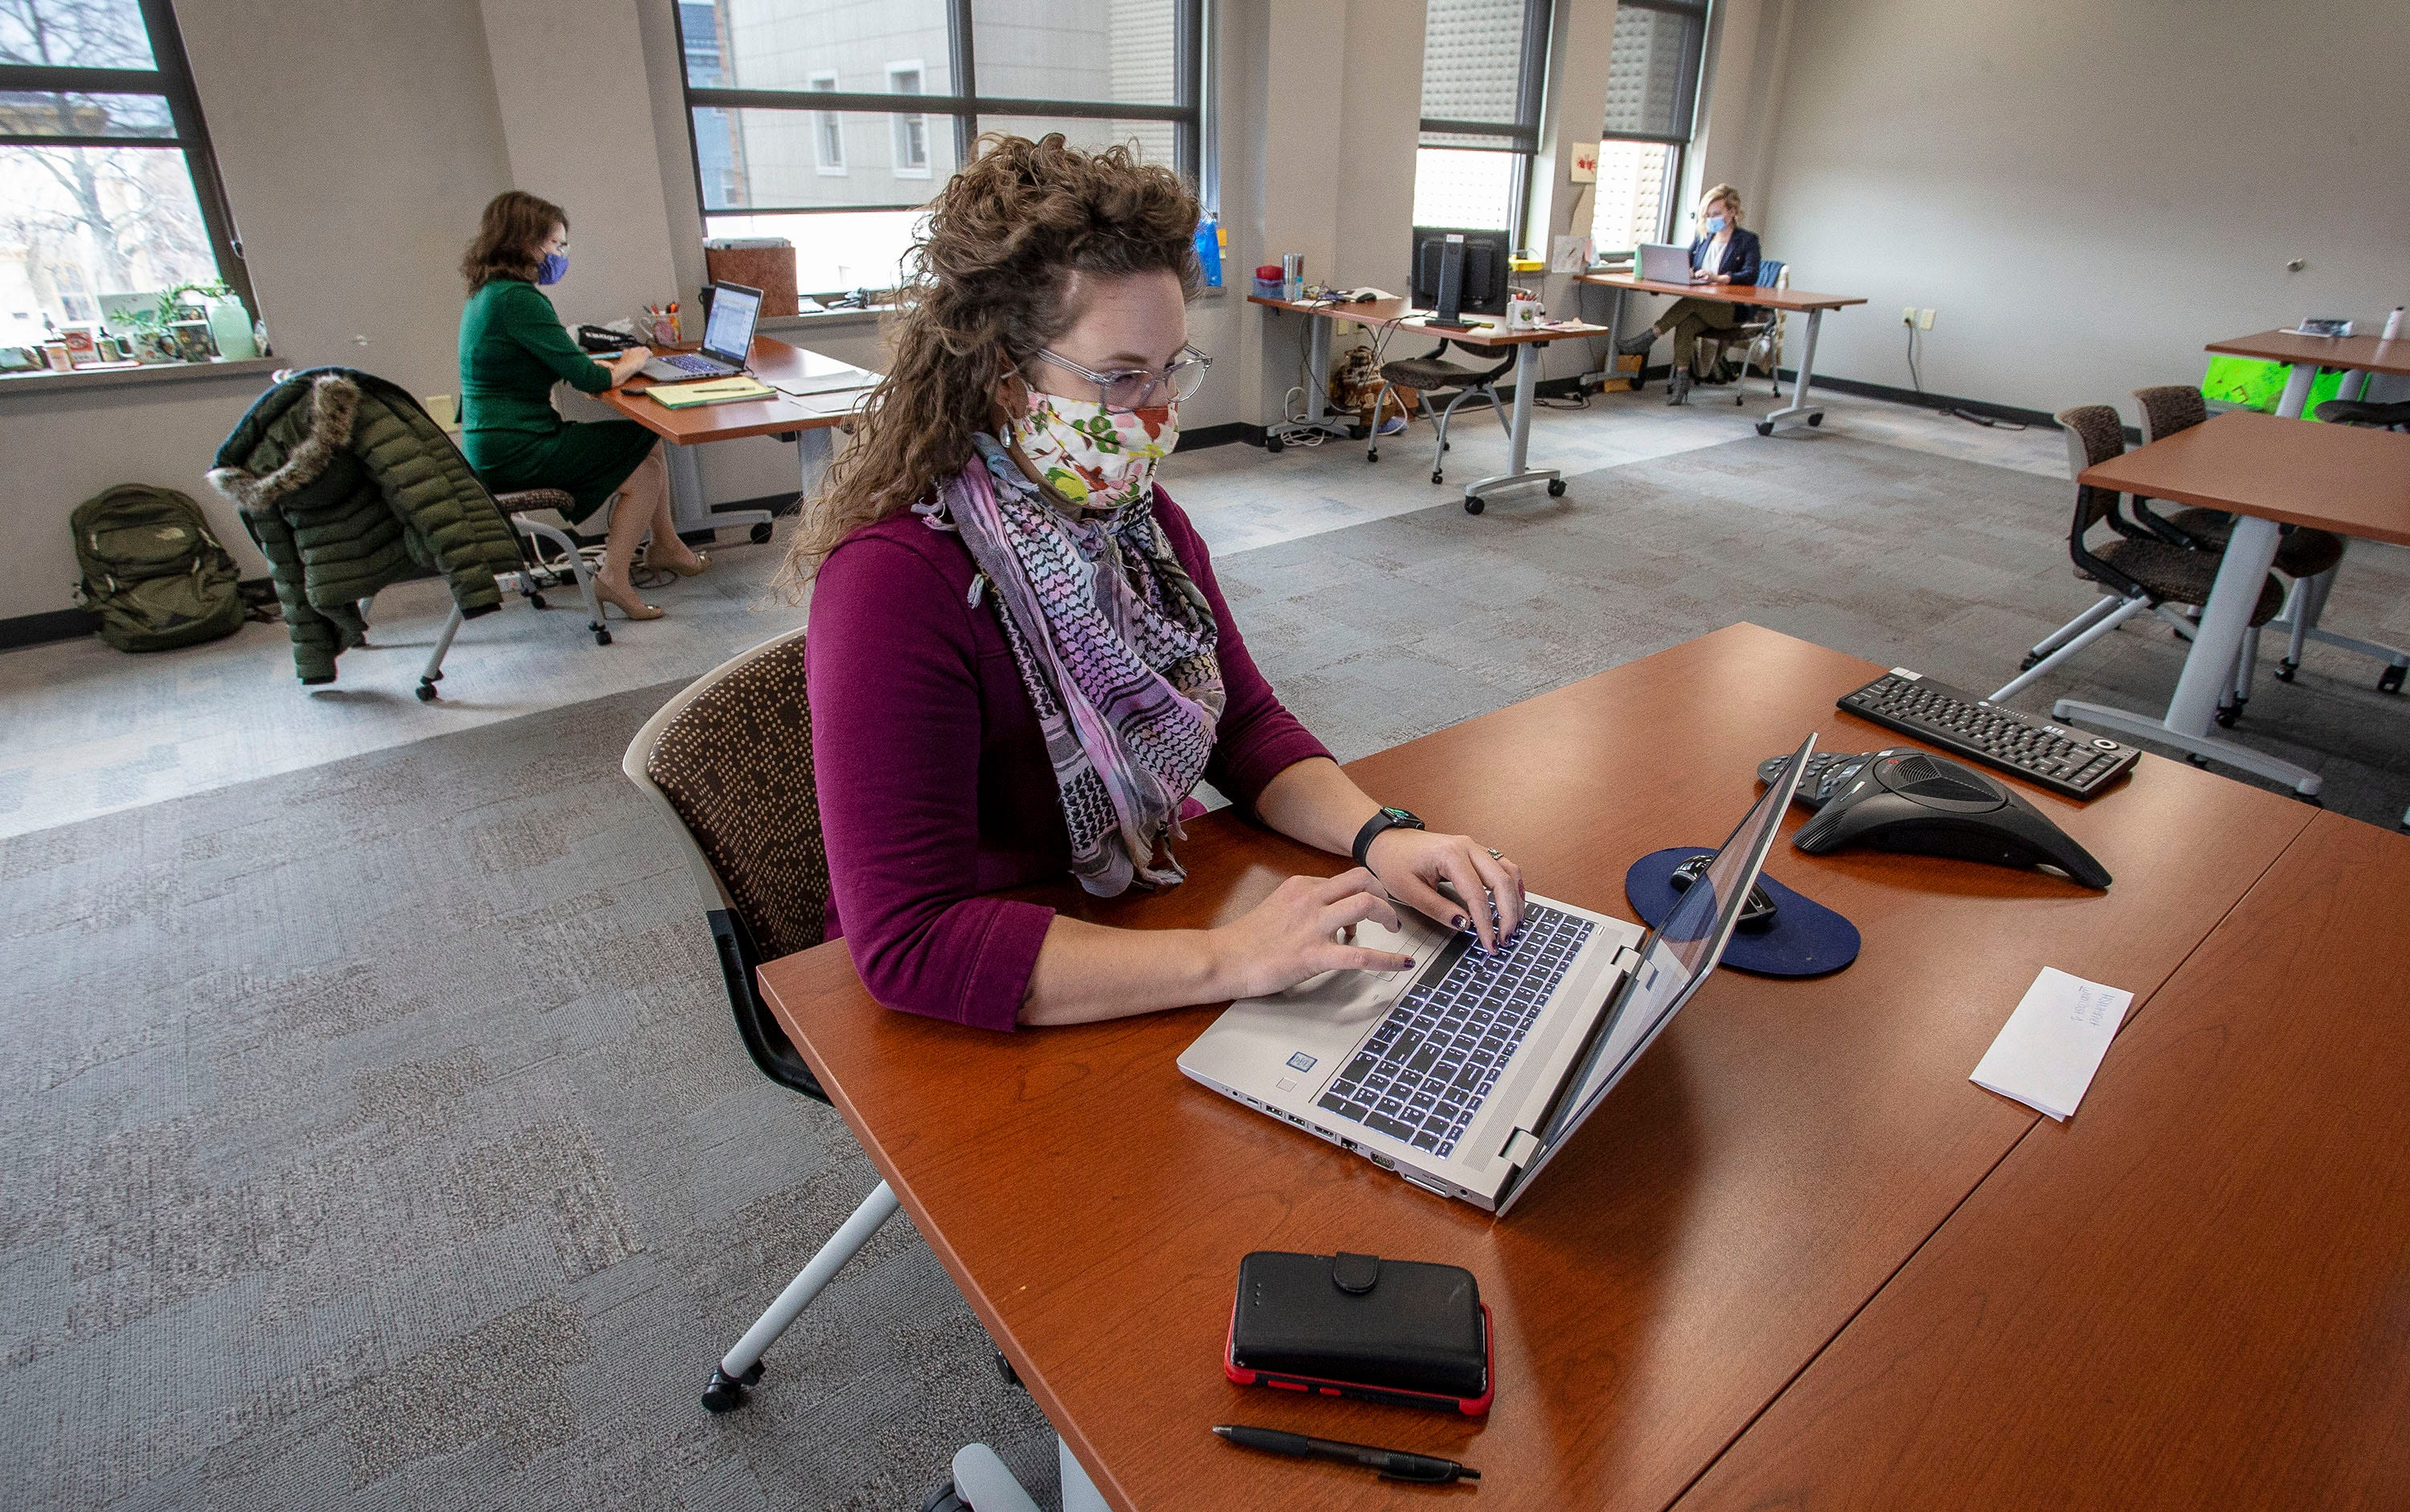 Sheboygan County Clinical Services Supervisor Amanda Strojinc, center, works on correspondence while Health Officer Starrlene Grossman, left, and Lead Health Strategist Libby Jacobs, right, work socially distanced from each other in the main conference room at Sheboygan County Health and Human Services on Wednesday, Dec. 16.